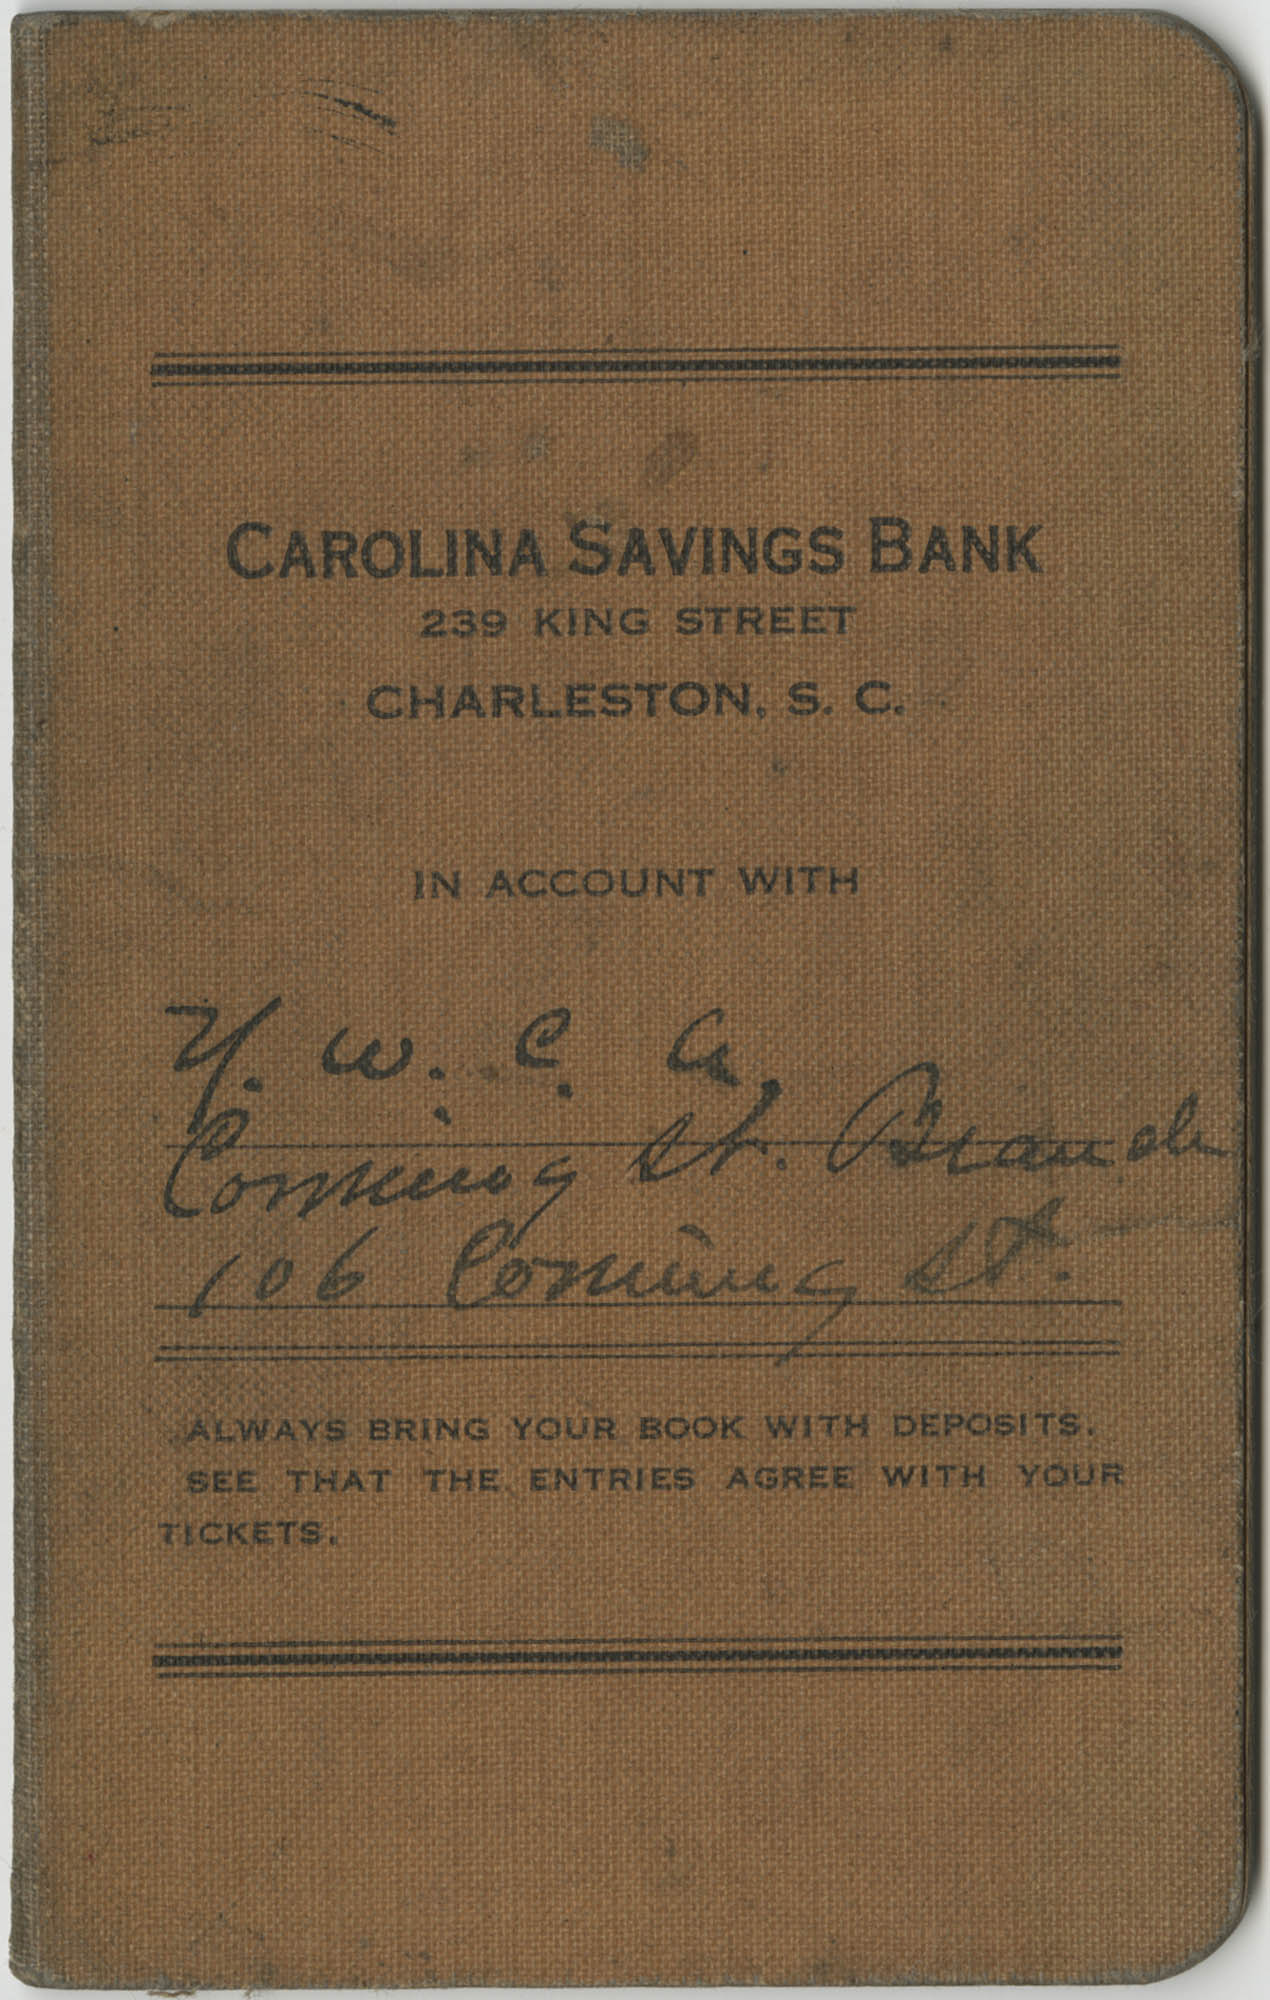 Carolina Savings Bank Account Book for the Y.W.C.A., Coming Street Branch, Front Cover